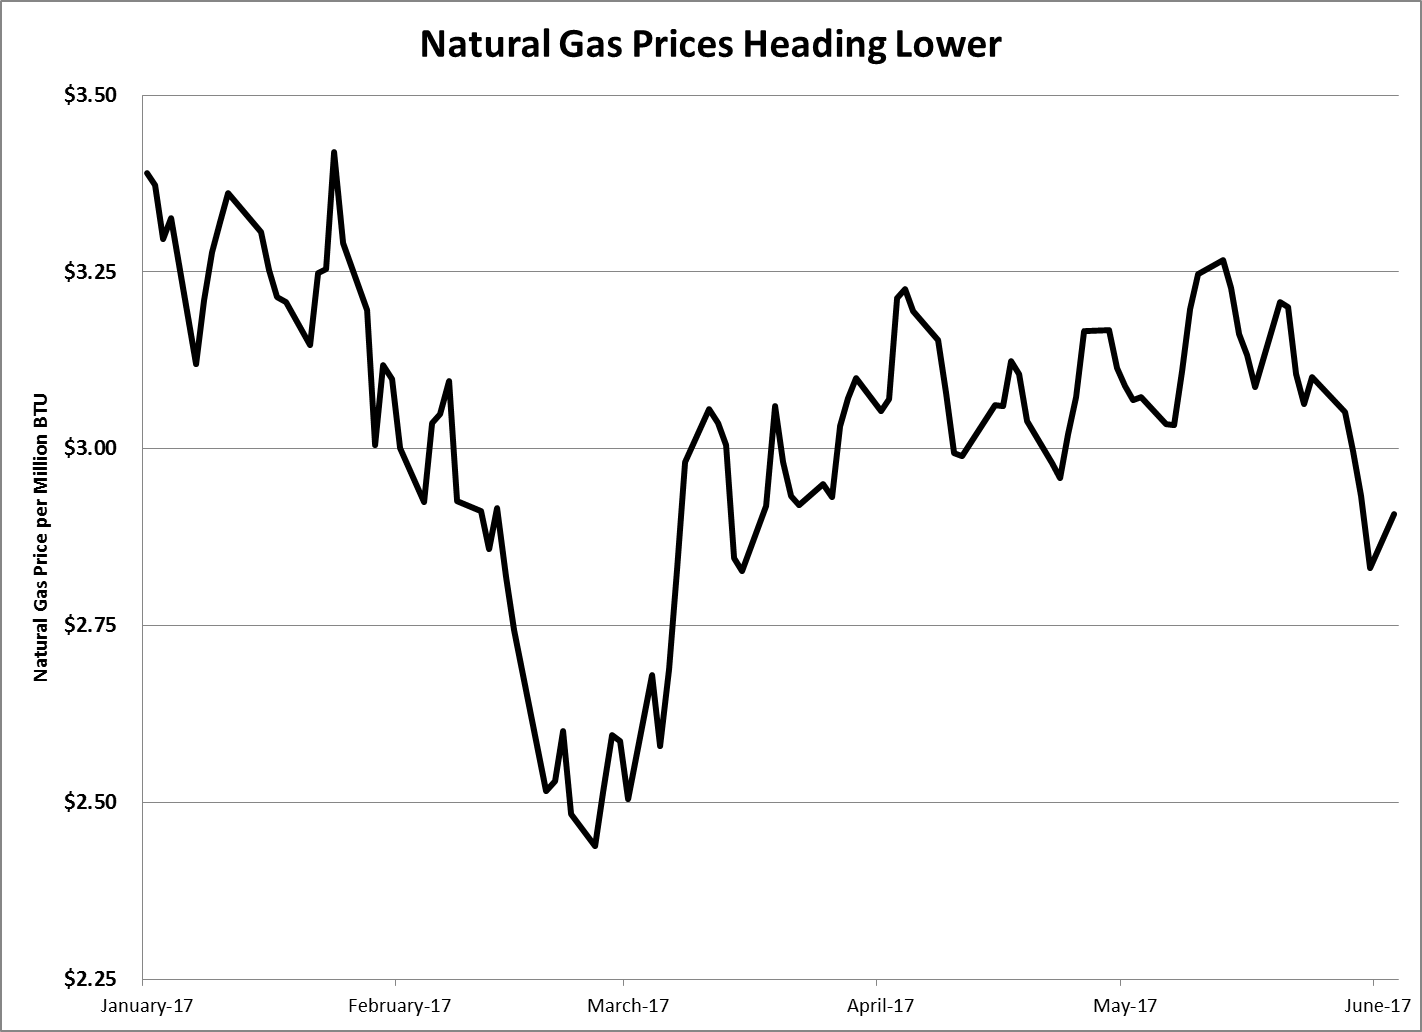 Back on April 21, I told readers ofWinning Investor Dailythat rising natural gas prices couldn't last. I was a little early, but the trend finally turned.